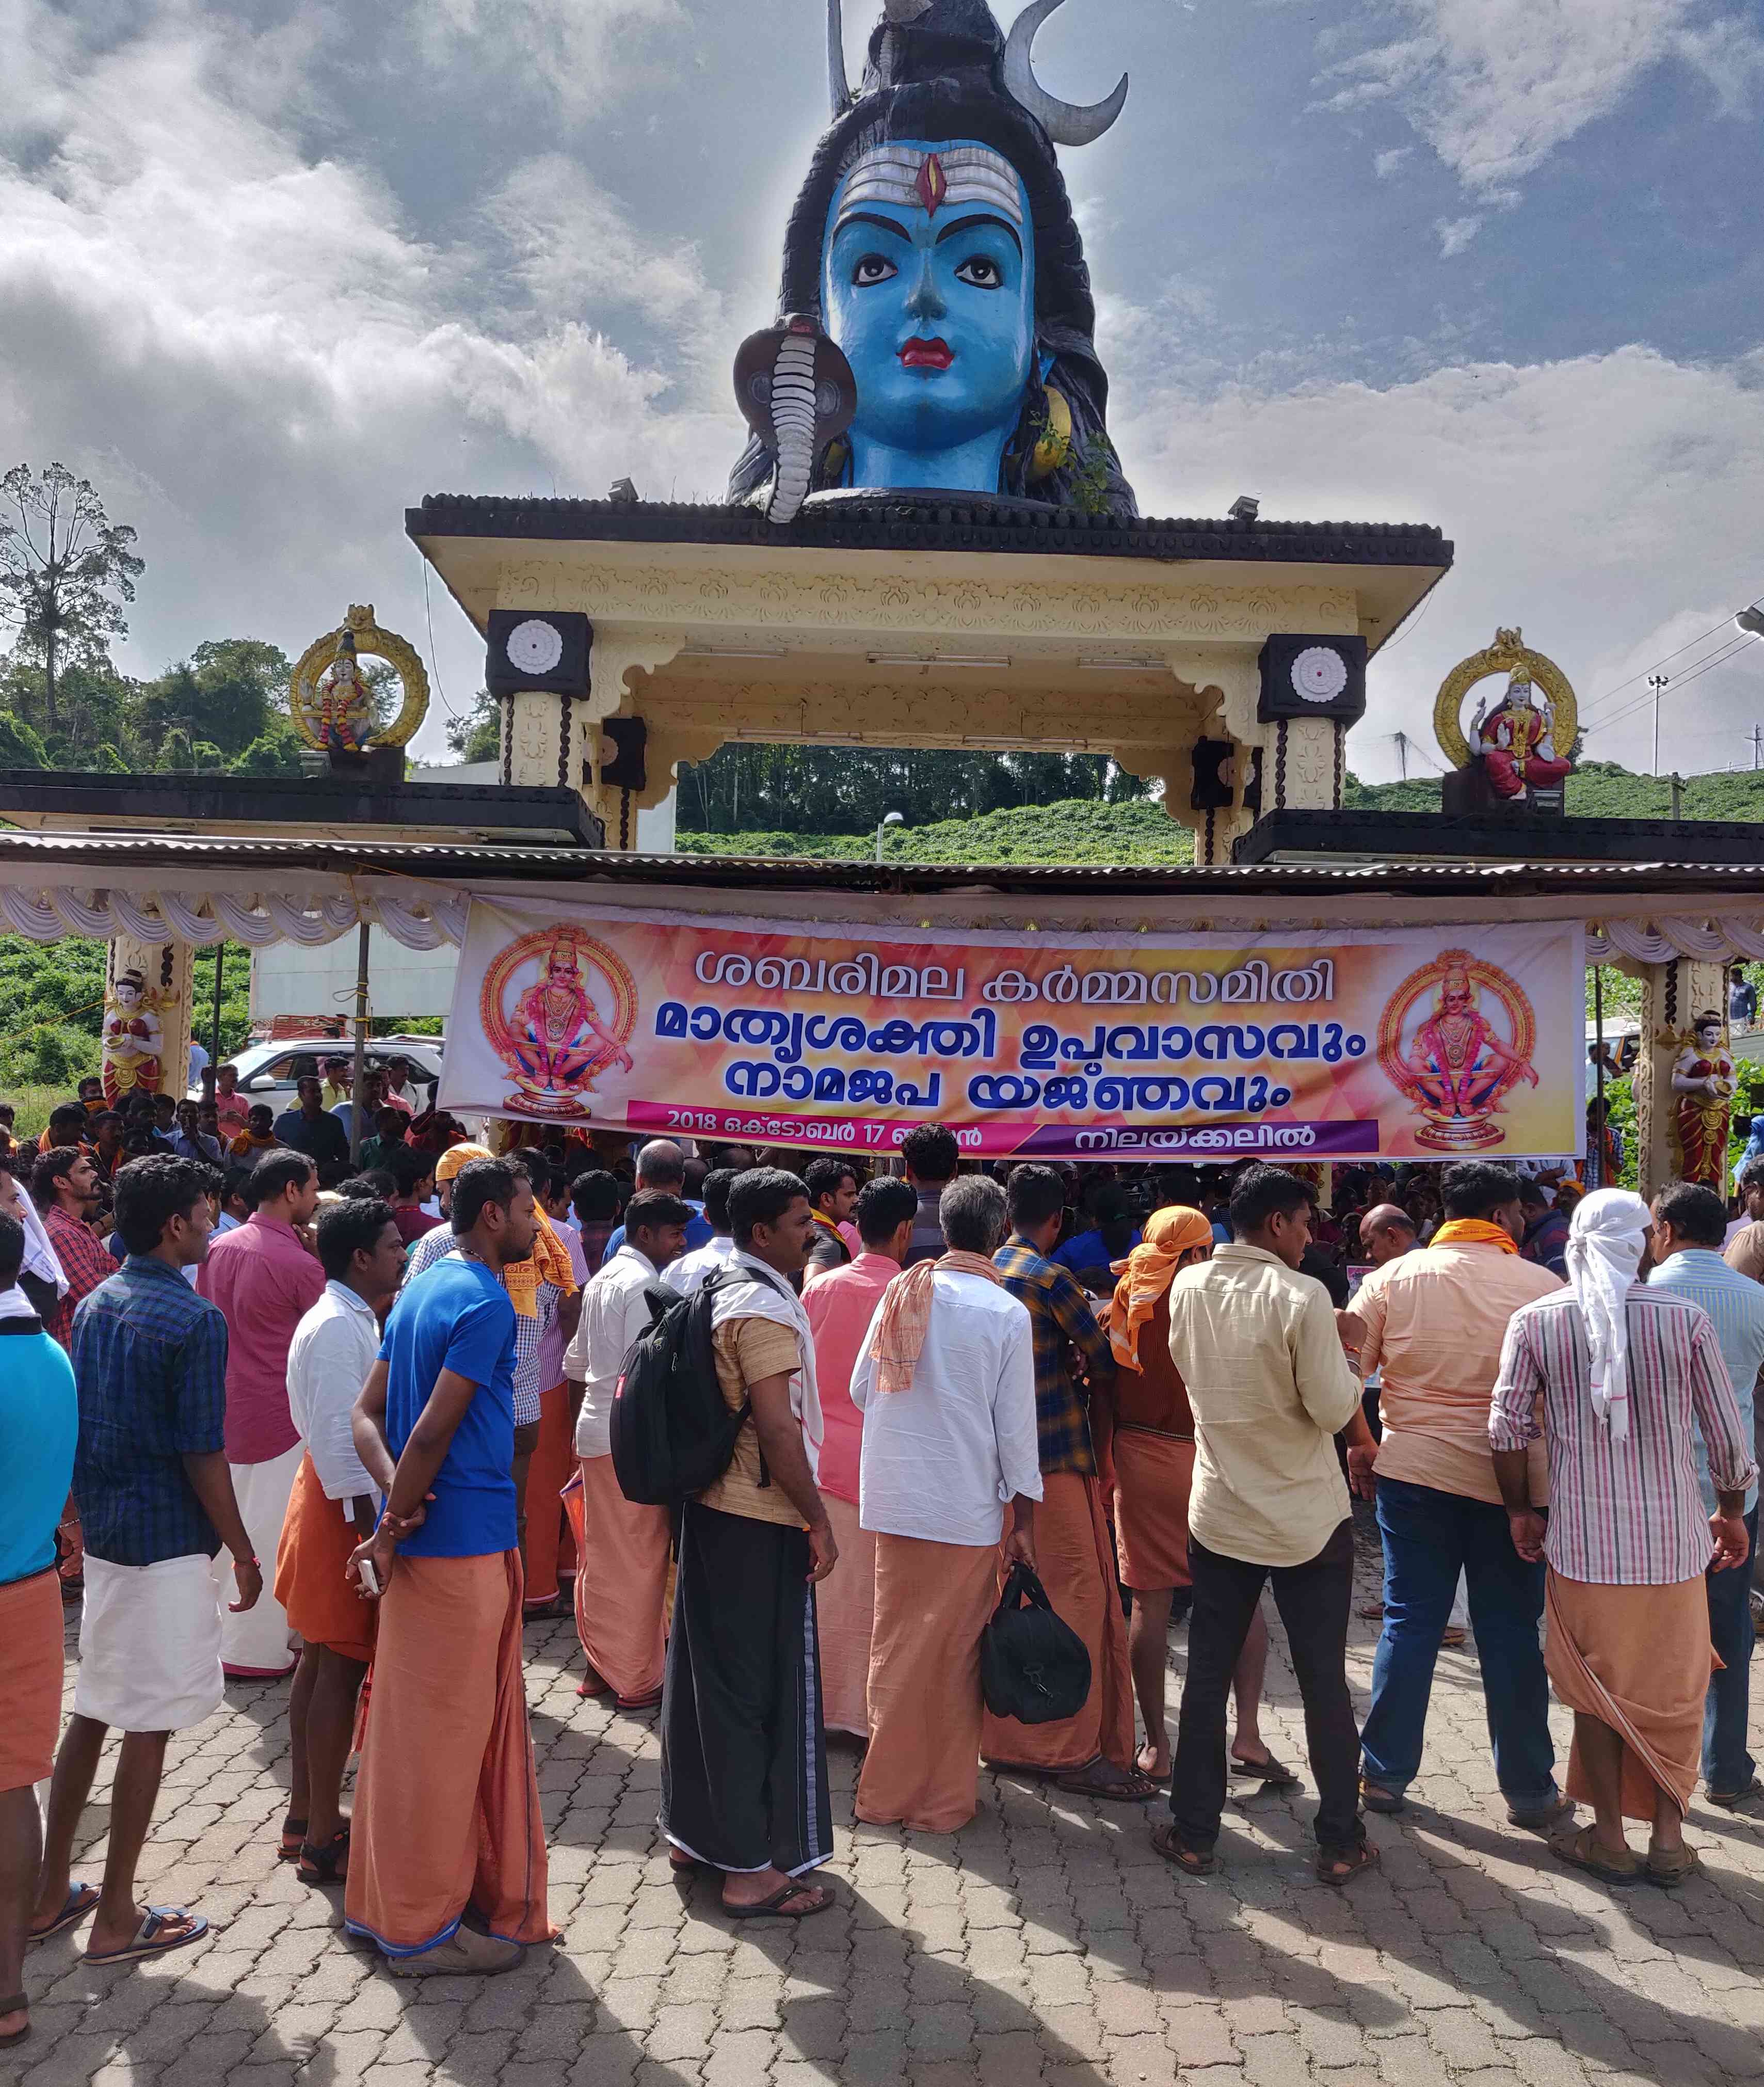 Protestors gather at the Mahadeva temple in Nilakkal on Wednesday. (Credit: TA Ameerudheen)